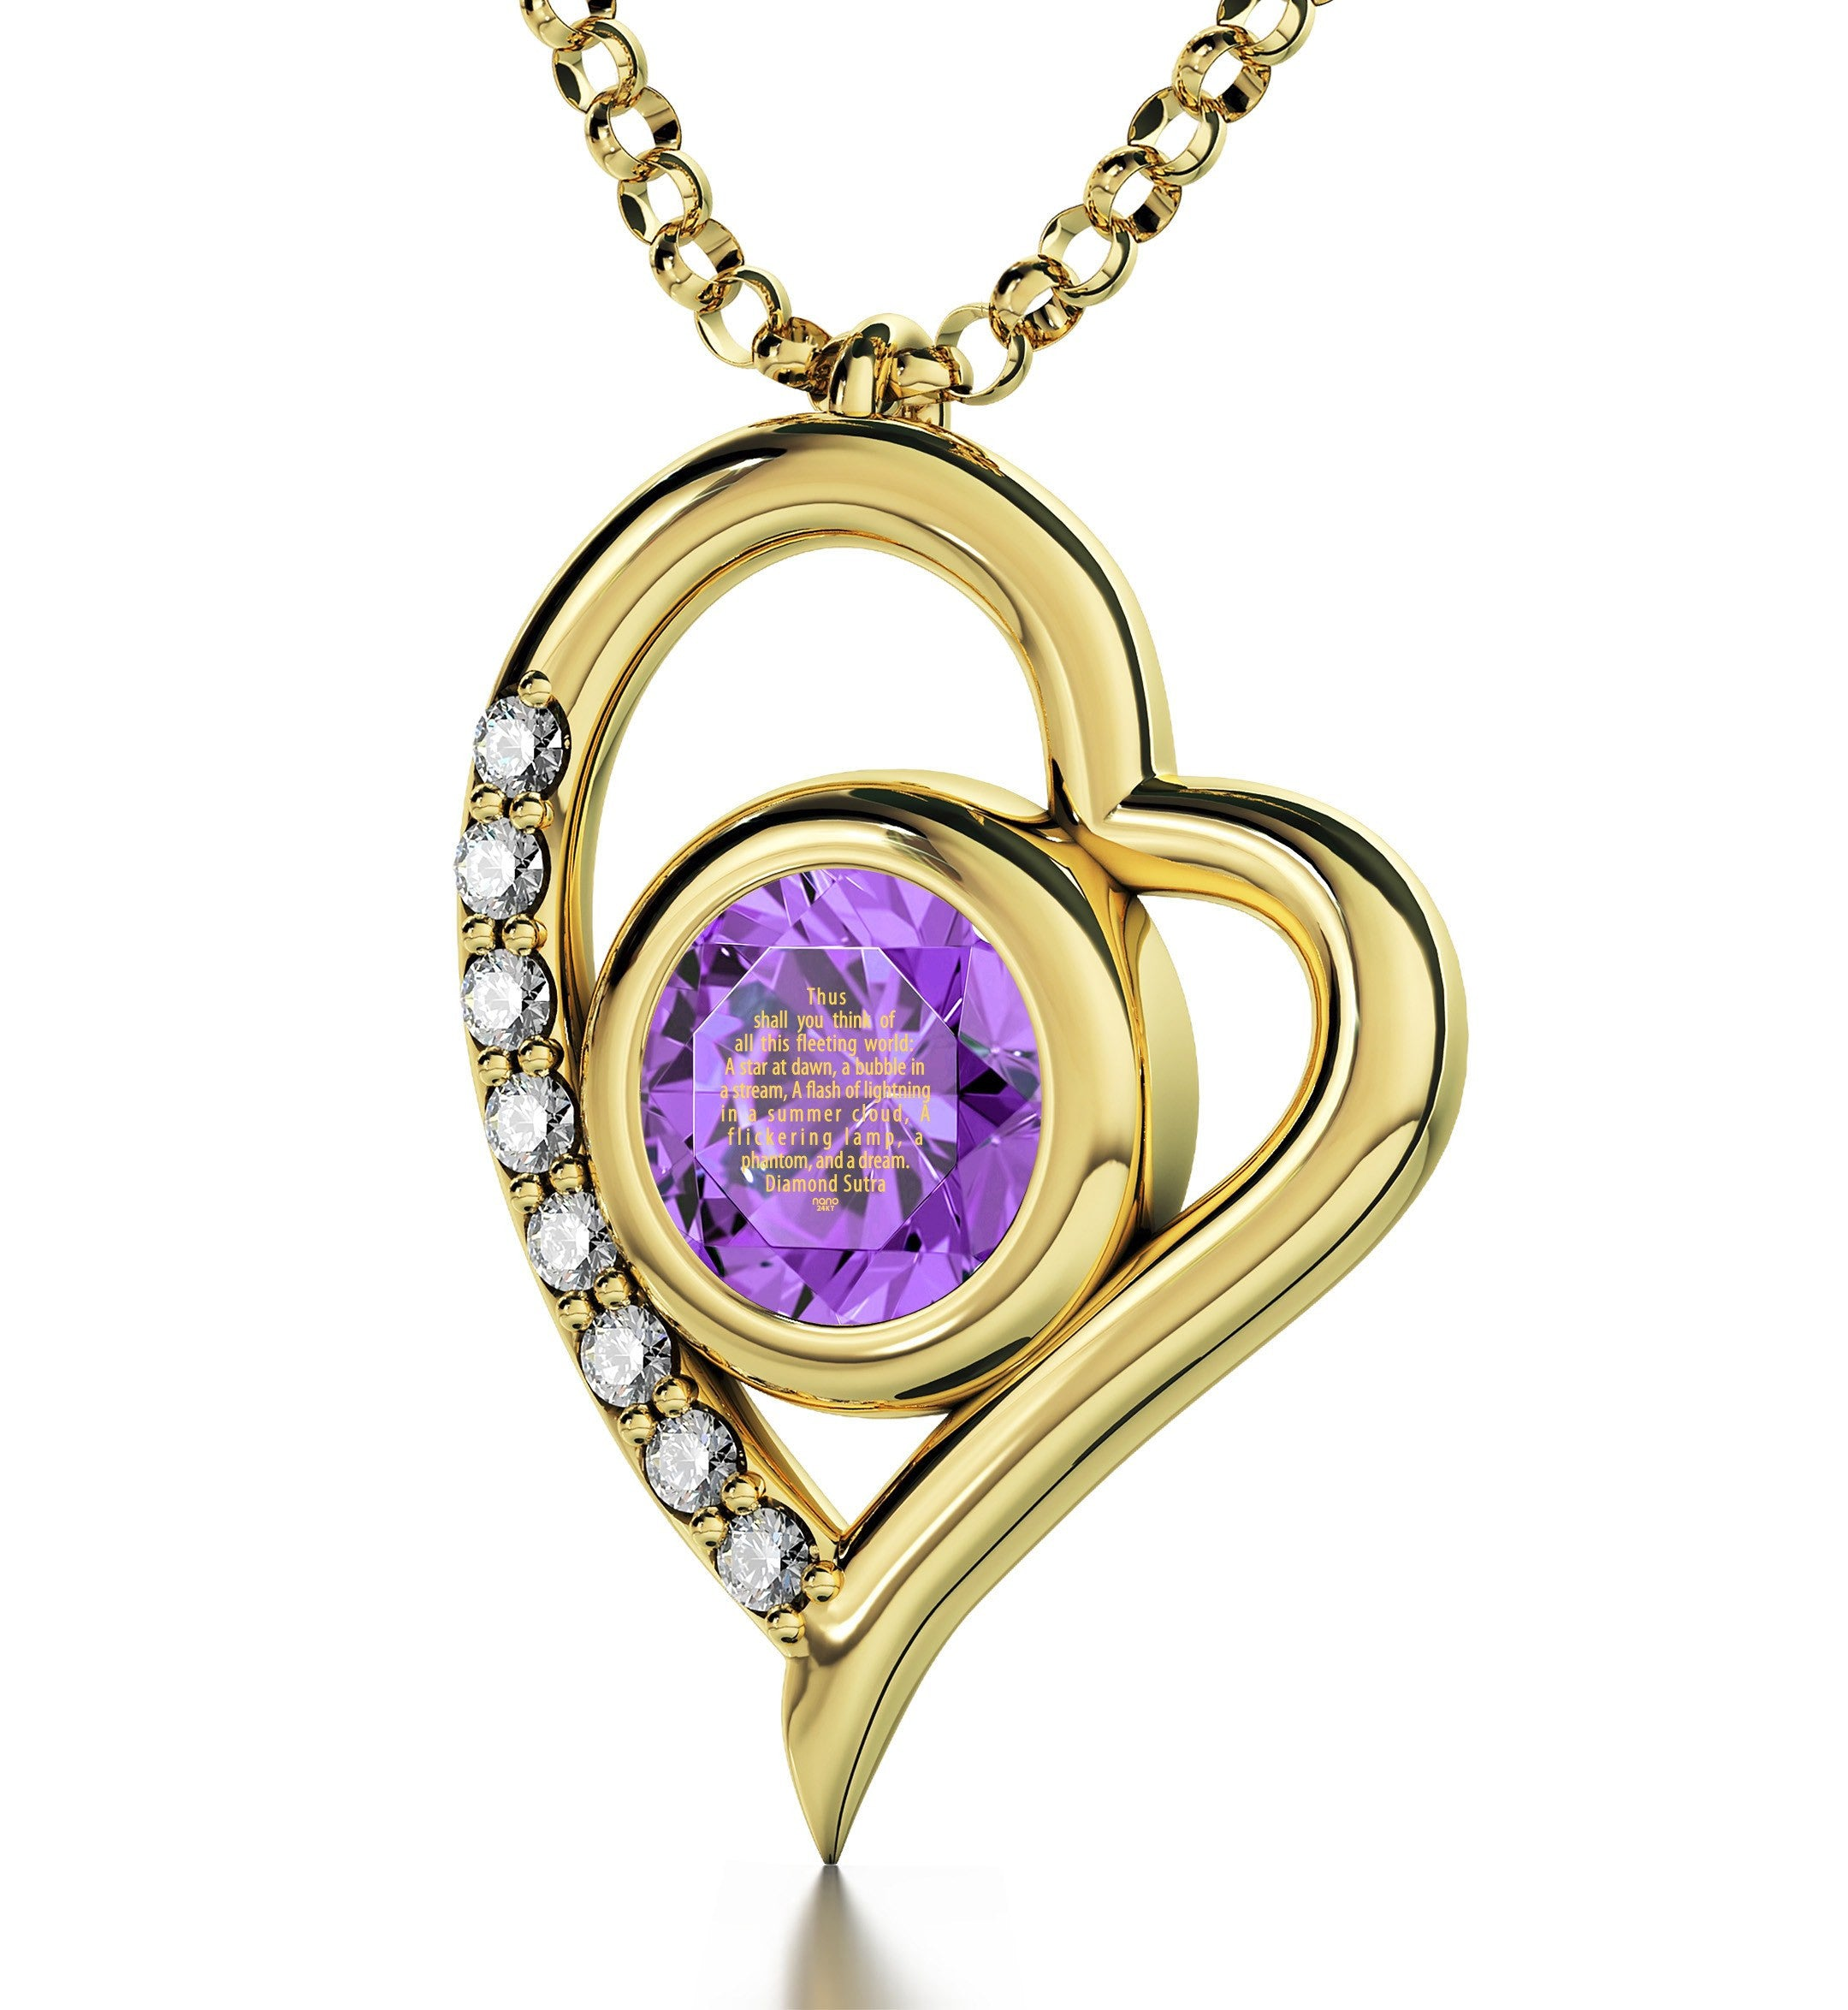 """DiamondSutraEngravedin24k, BuddhaJewelrywithSwarovskiCrystalStone, MeditationGifts, HeartNecklaces for Women"""